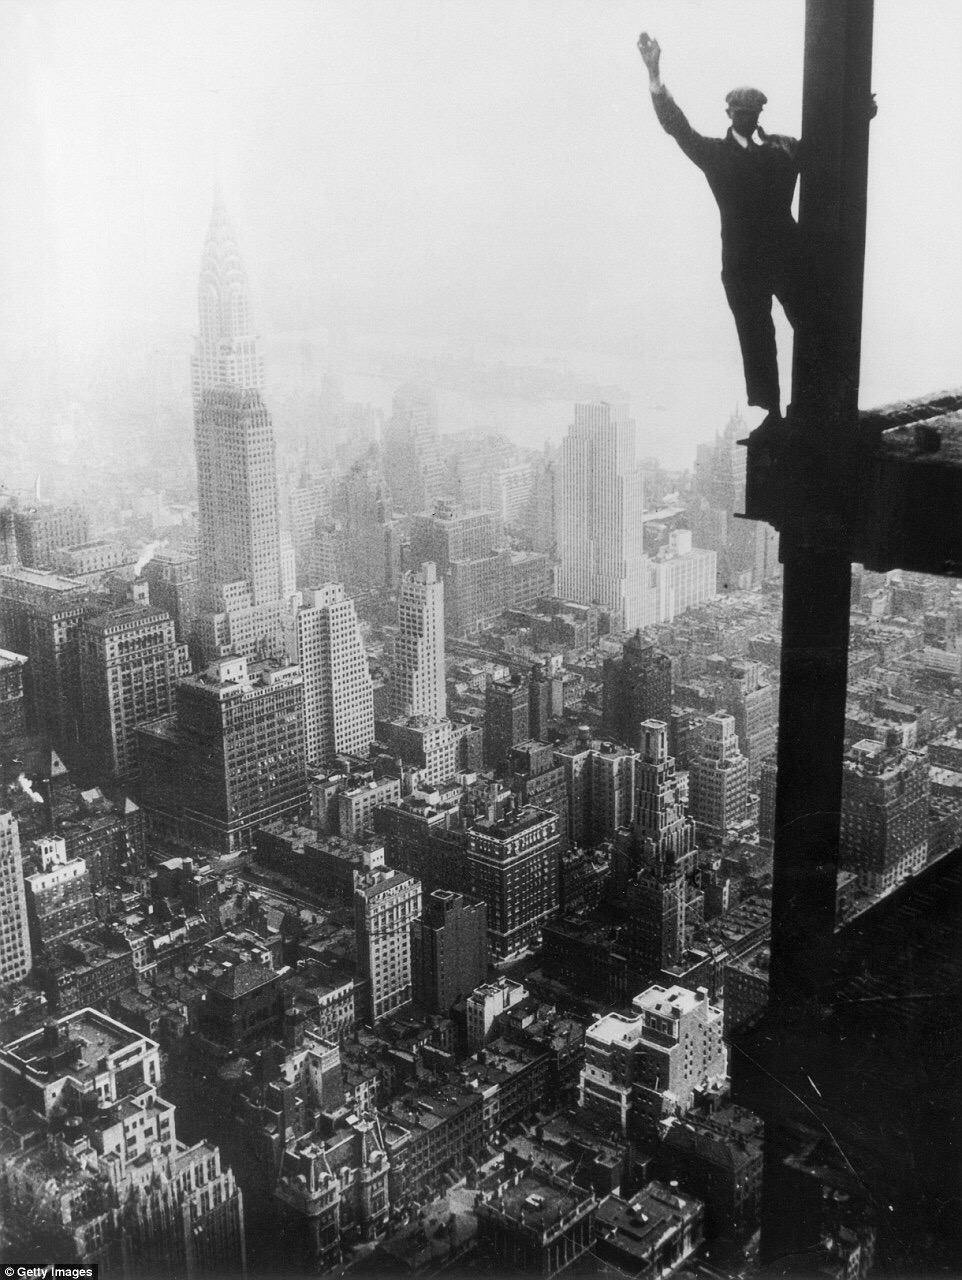 TRESTLES - Hello there, atop the Empire State Building 1931